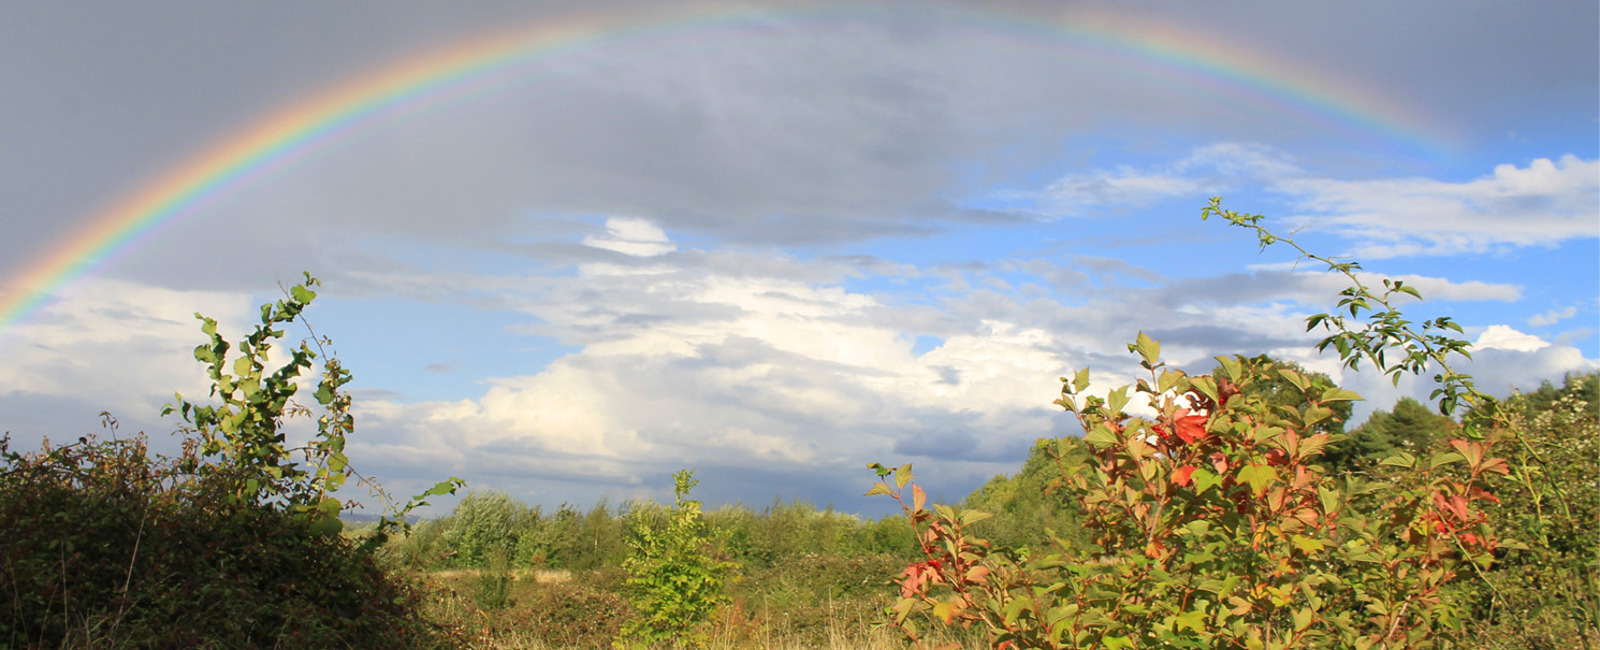 Rainbow at Folly Wood